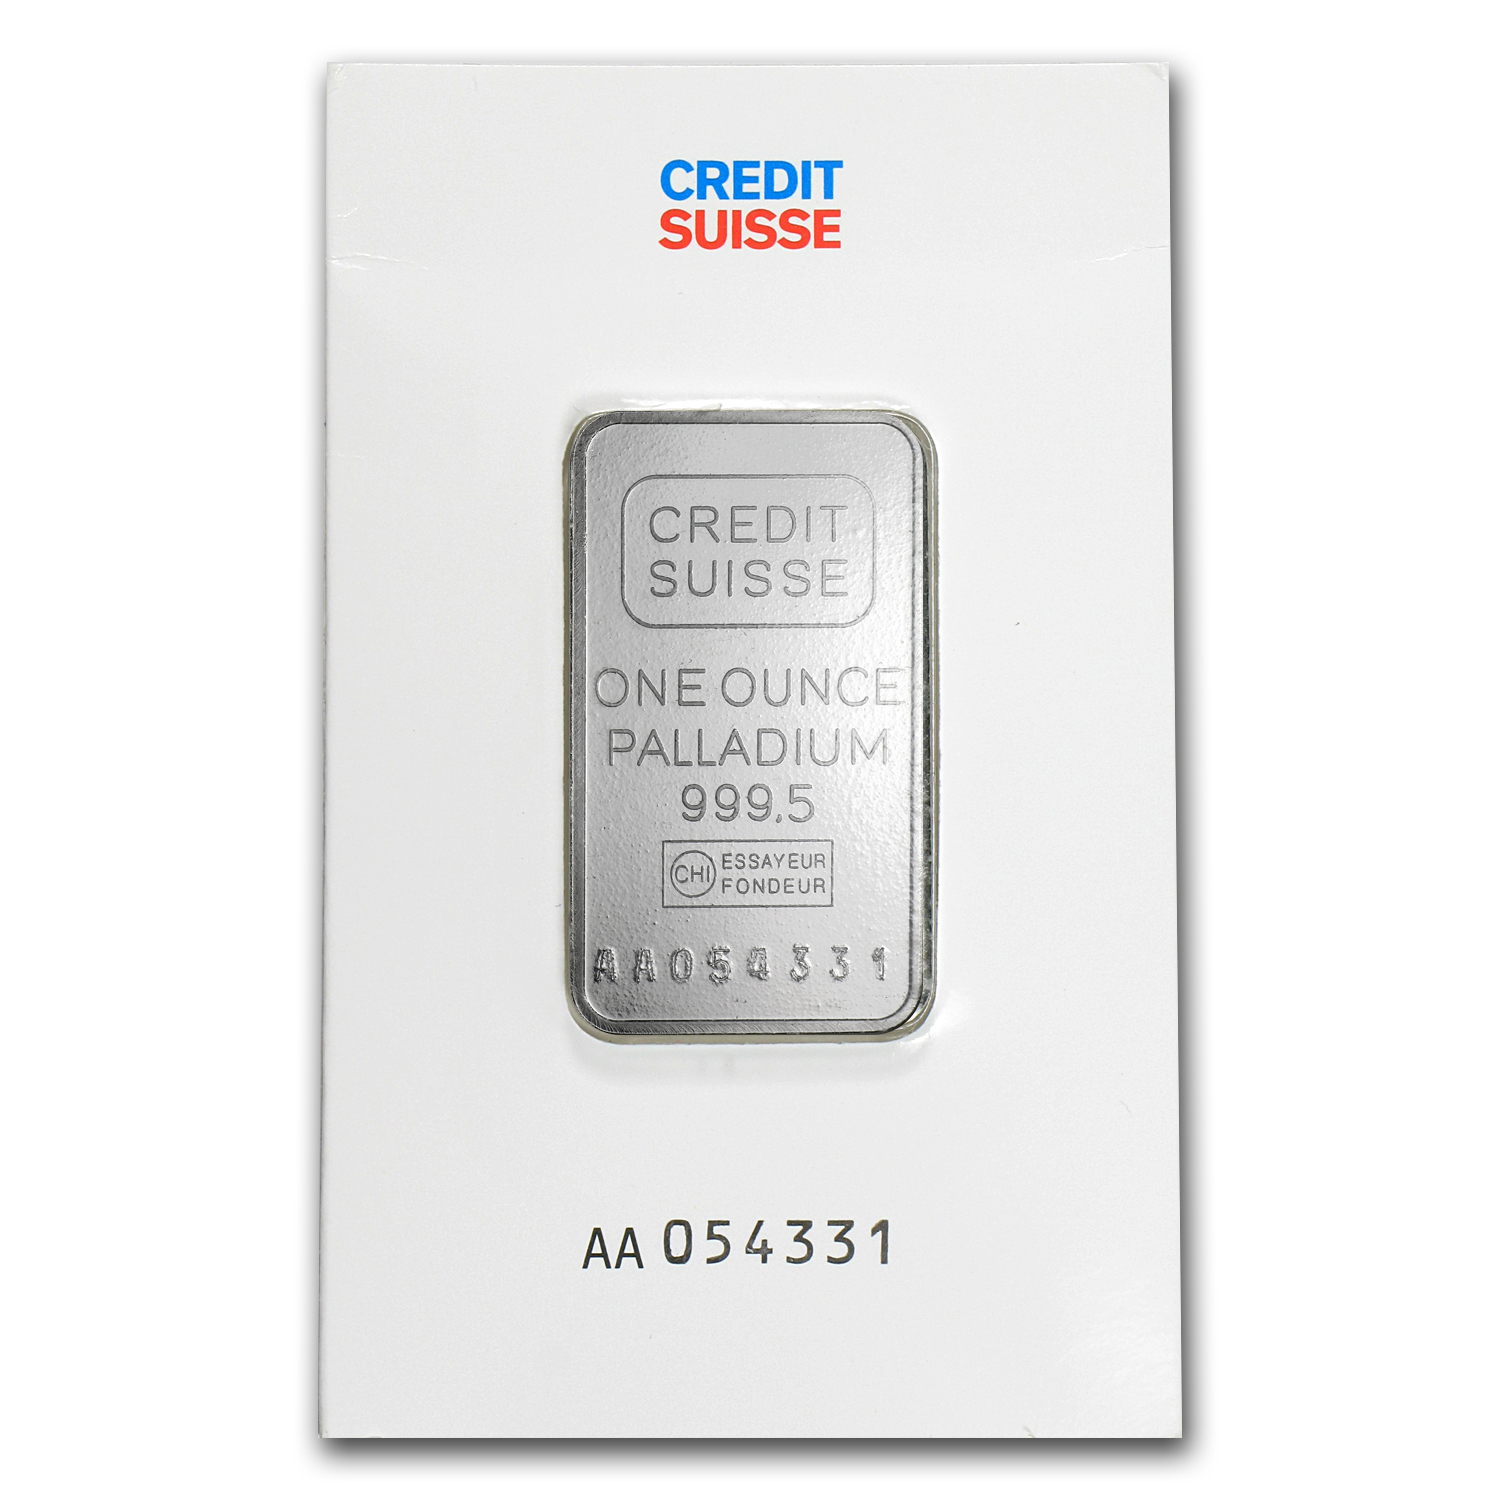 1 oz Palladium Bar - Credit Suisse (In Assay, .9995 Fine)